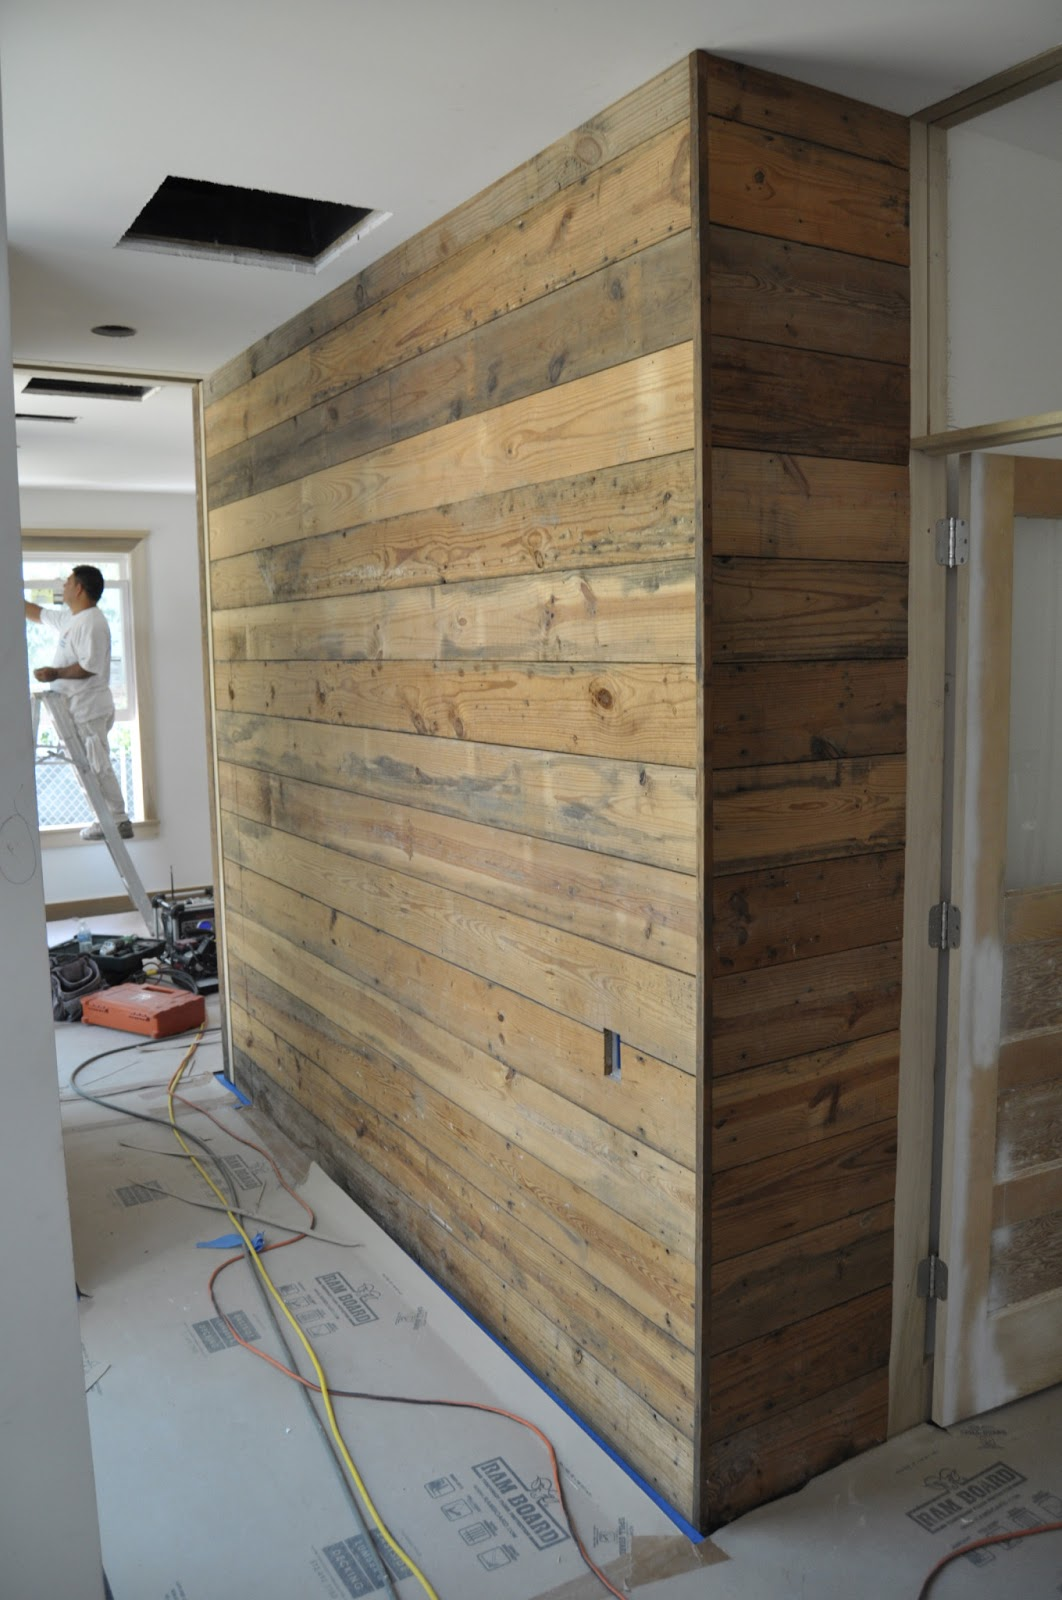 Finally We Worked With Fab Architecture On This Remodel Below What You Are Seeing Is An Oak Paneled Bat Wall Two Hidden Doors